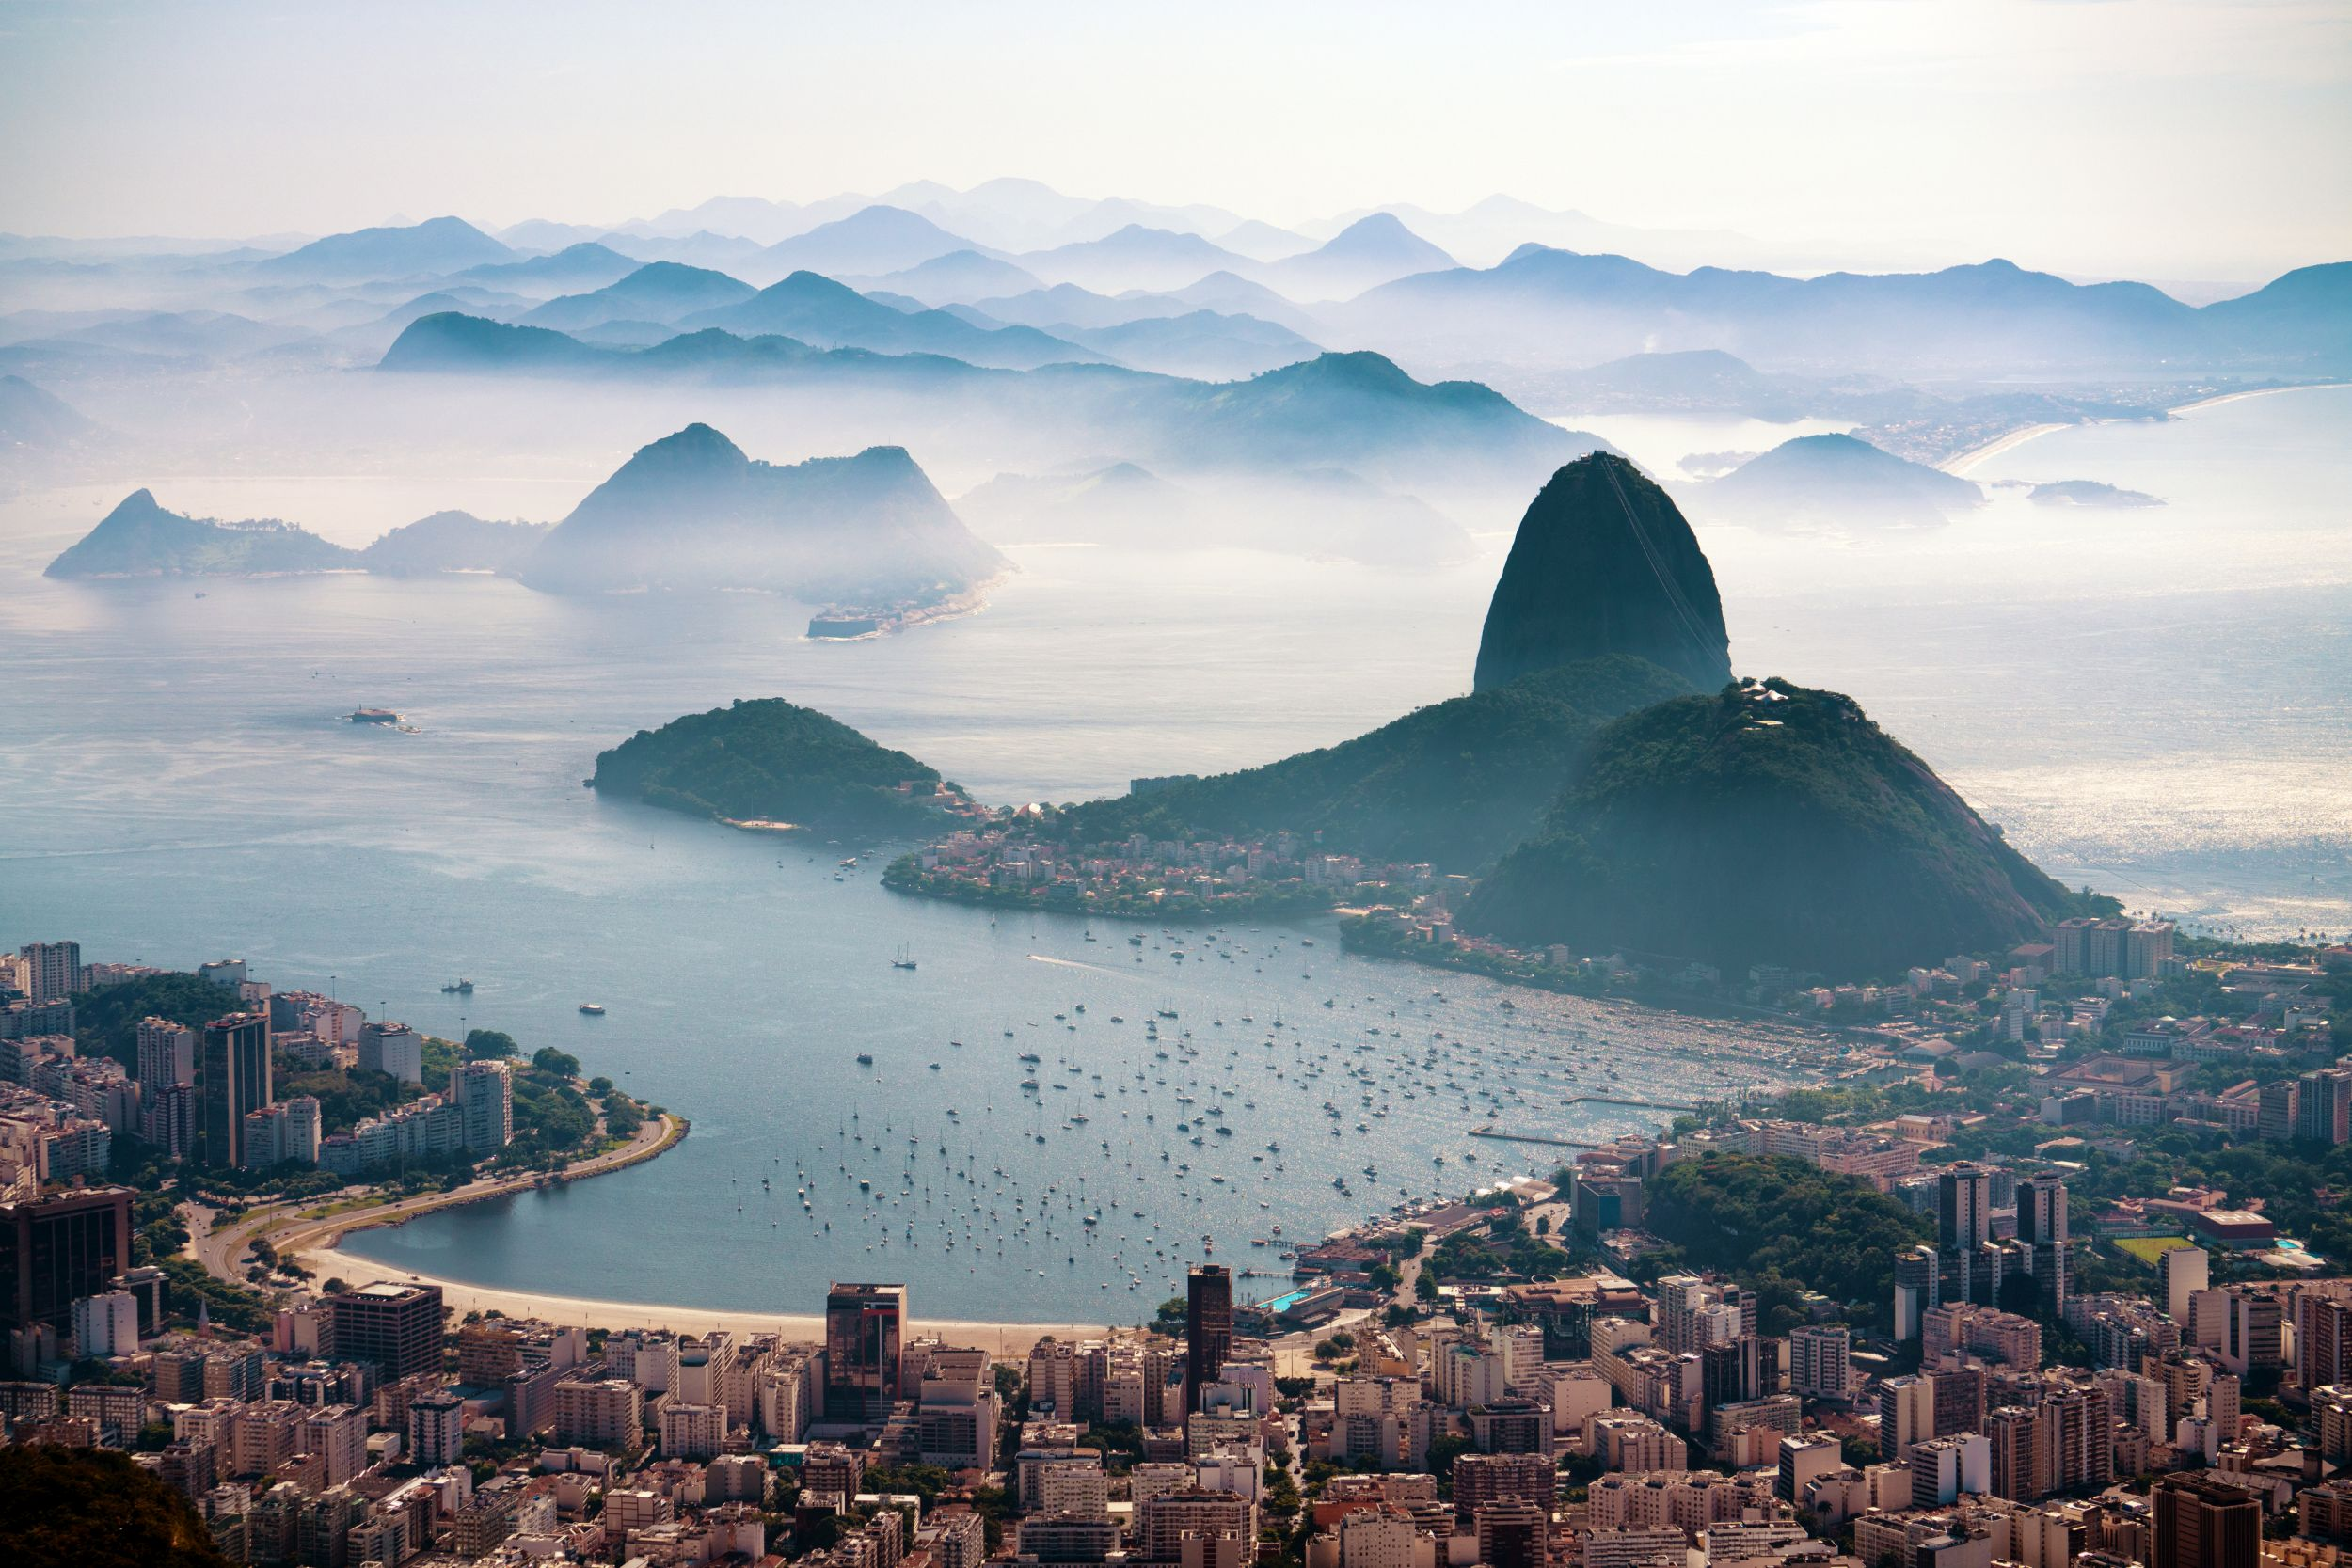 The Sugarloaf mountain in morning mist and Botafogo bay (Thinkstock/PA)